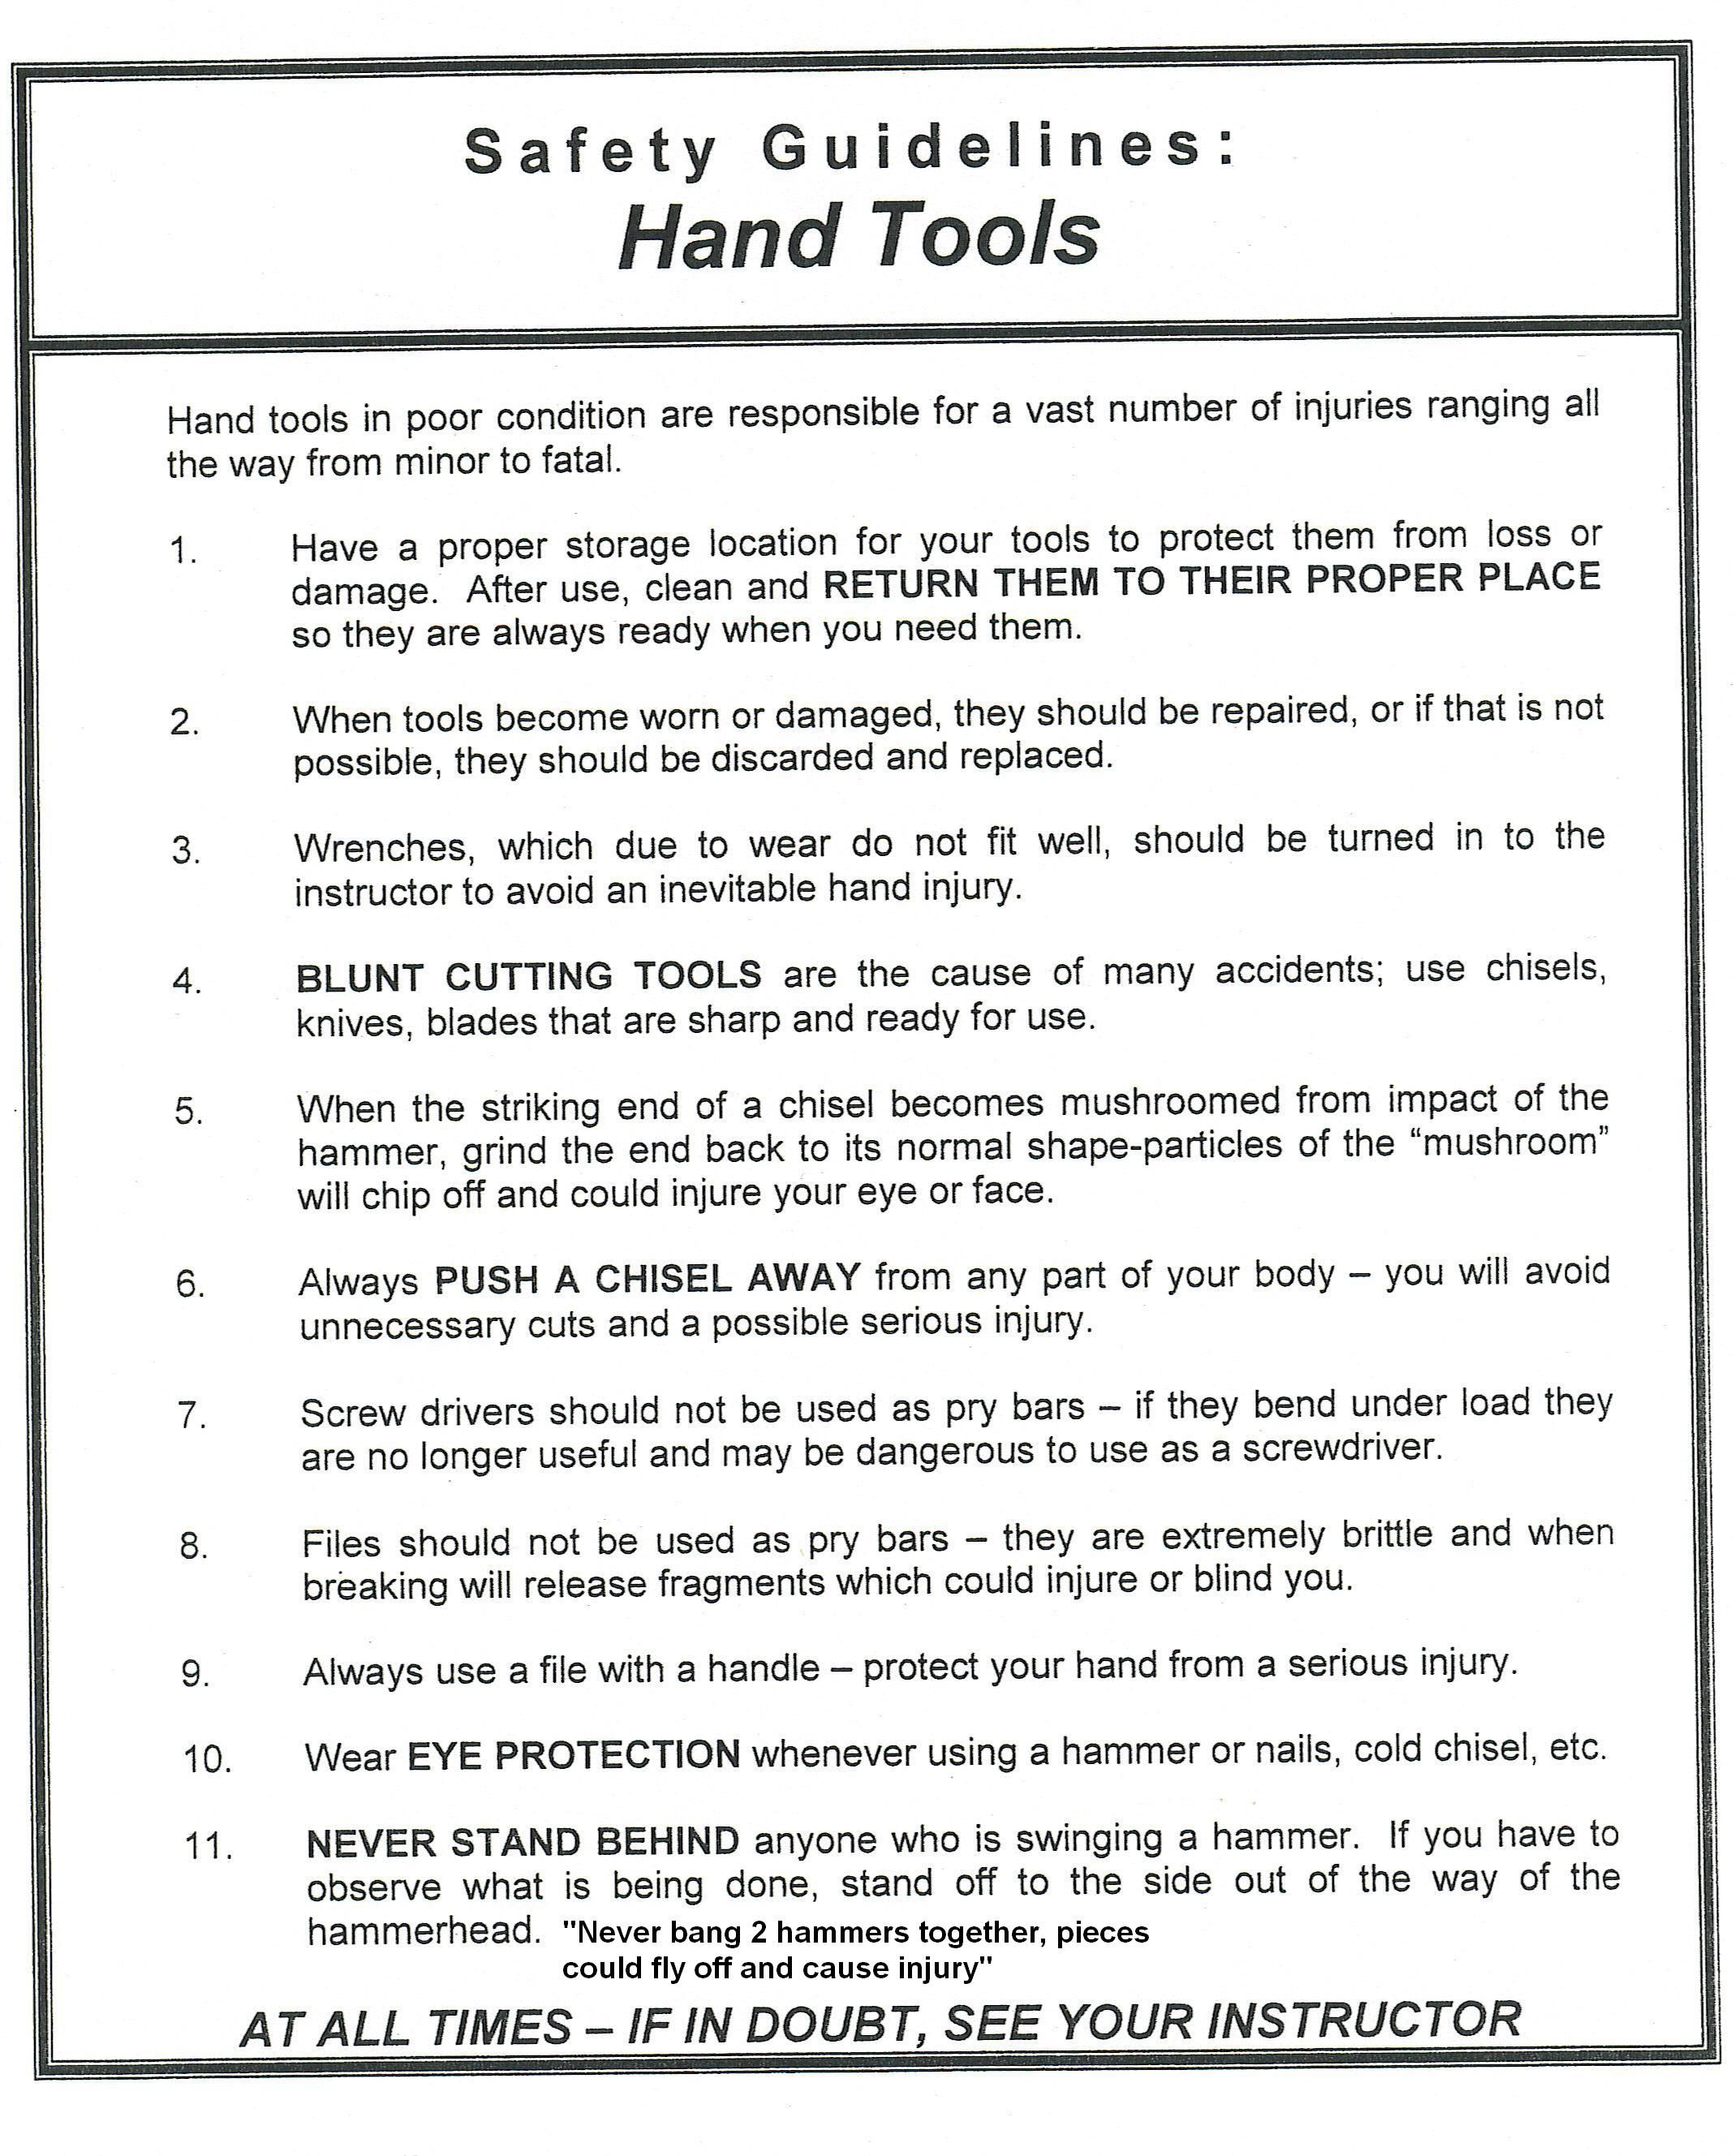 Safety hand tools.jpg (2137×2657) Hand tools, Safety